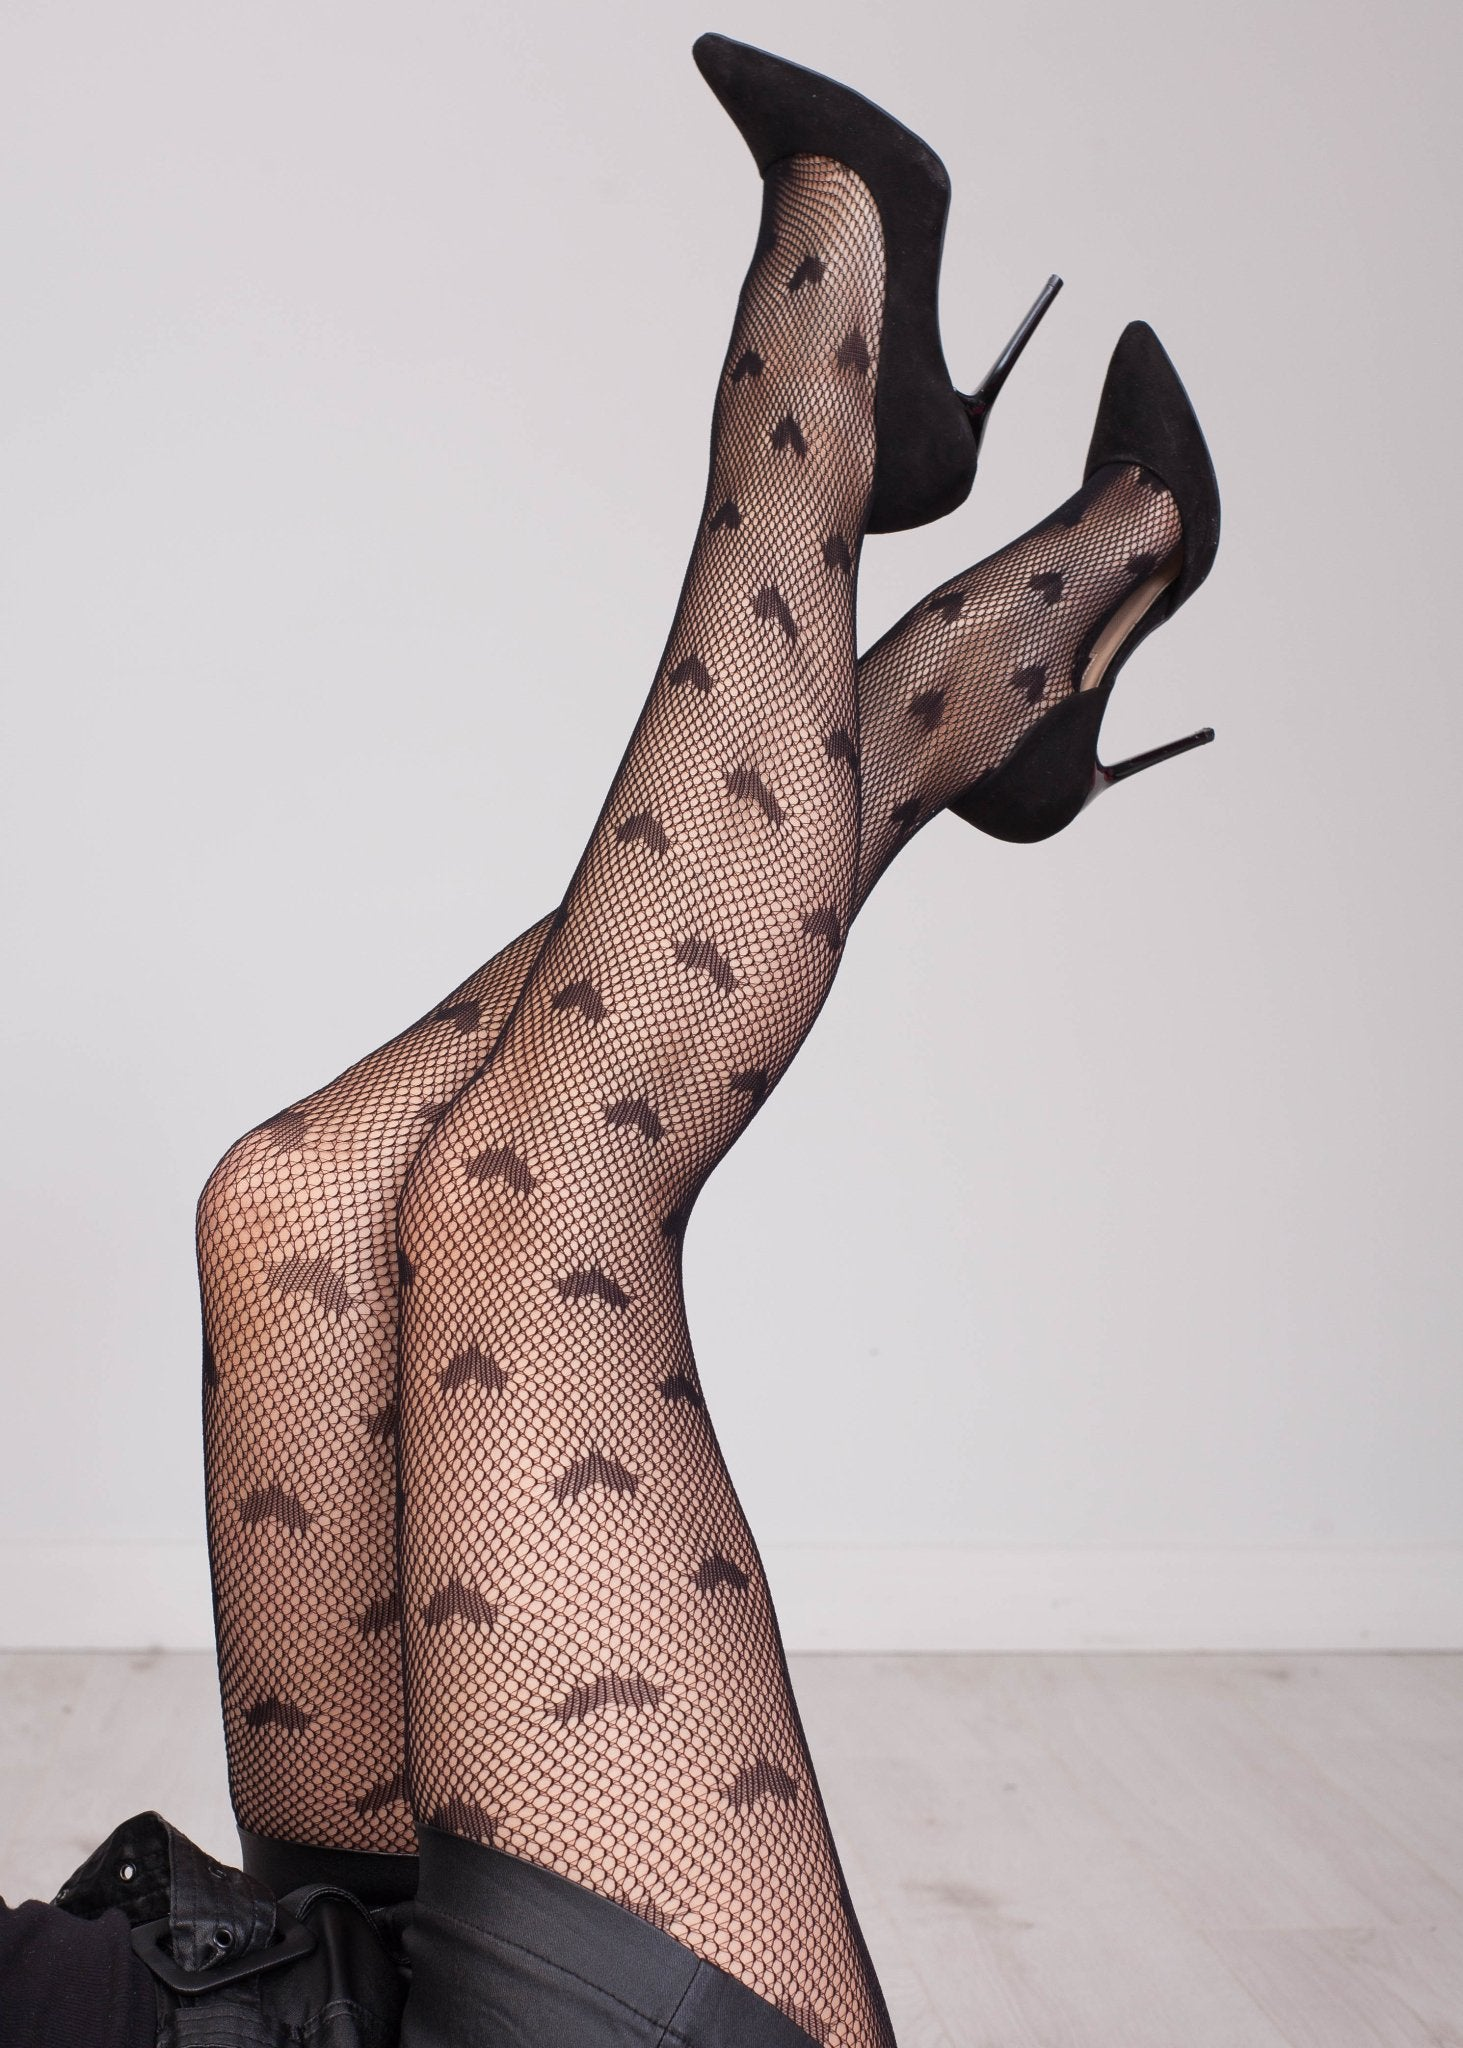 Priya Heart & Fishnet Tights - The Walk in Wardrobe